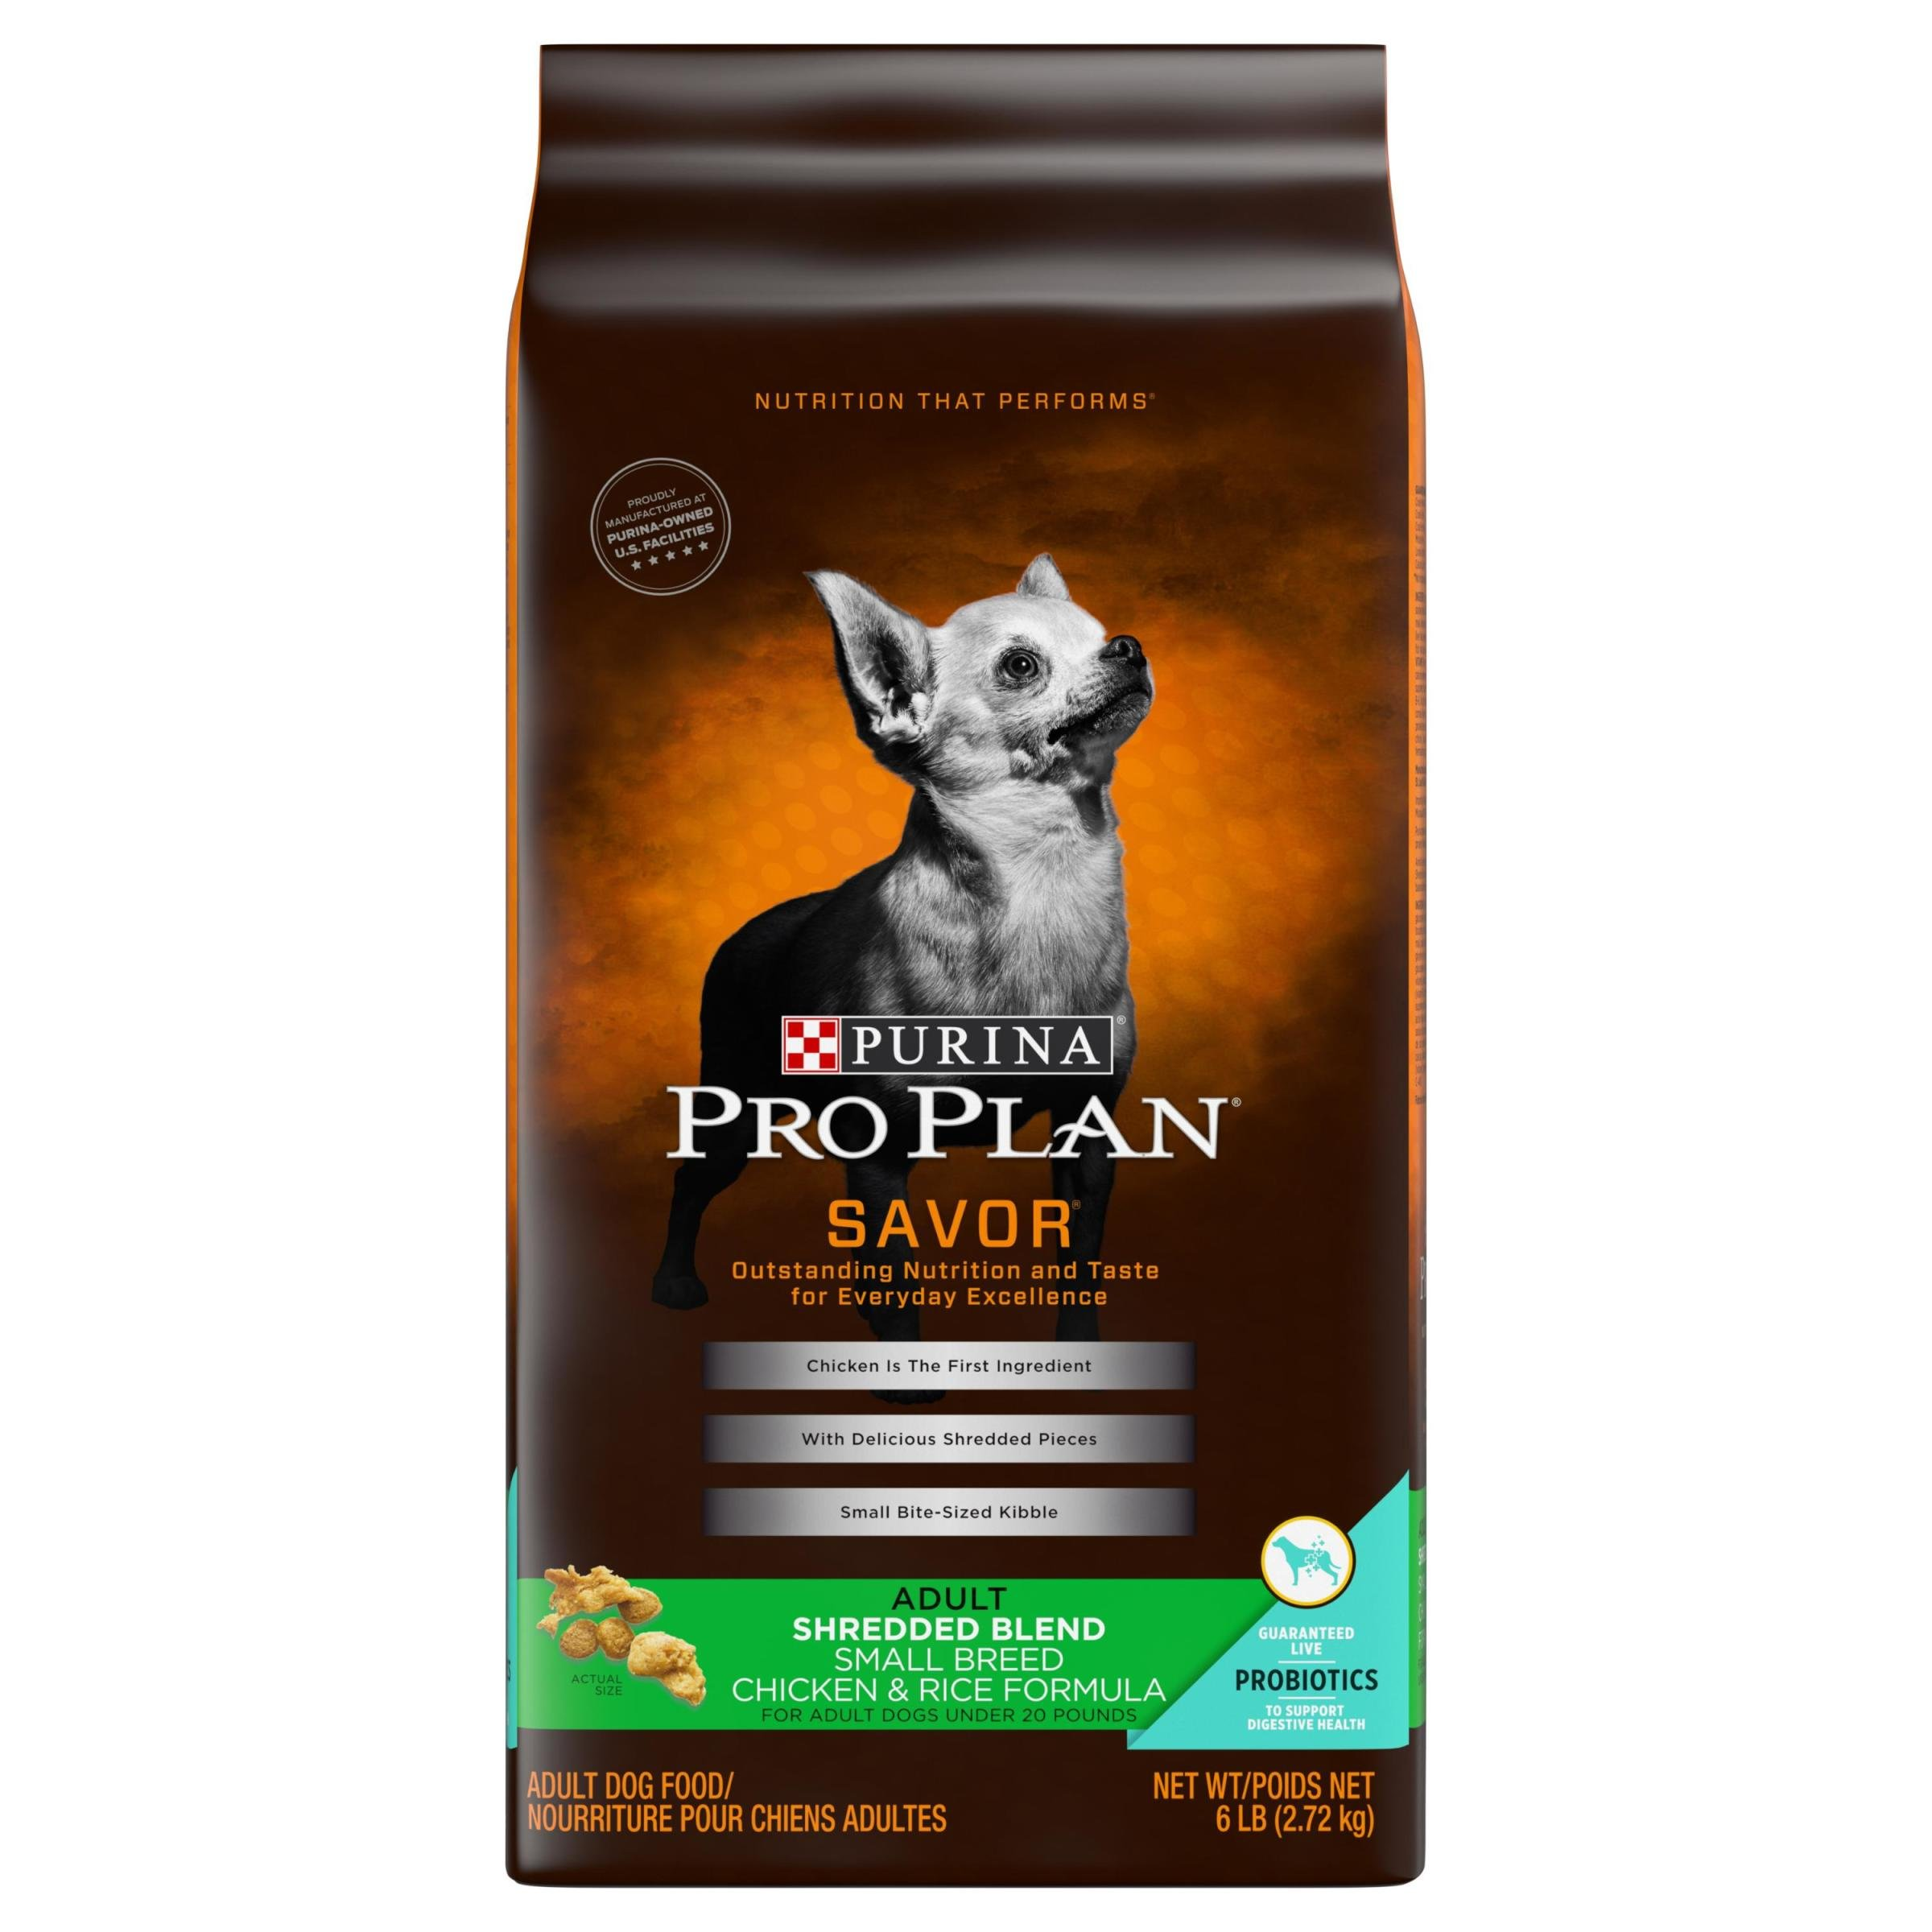 Details about Purina Pro Plan With Probiotics Small Breed Dry Dog Food